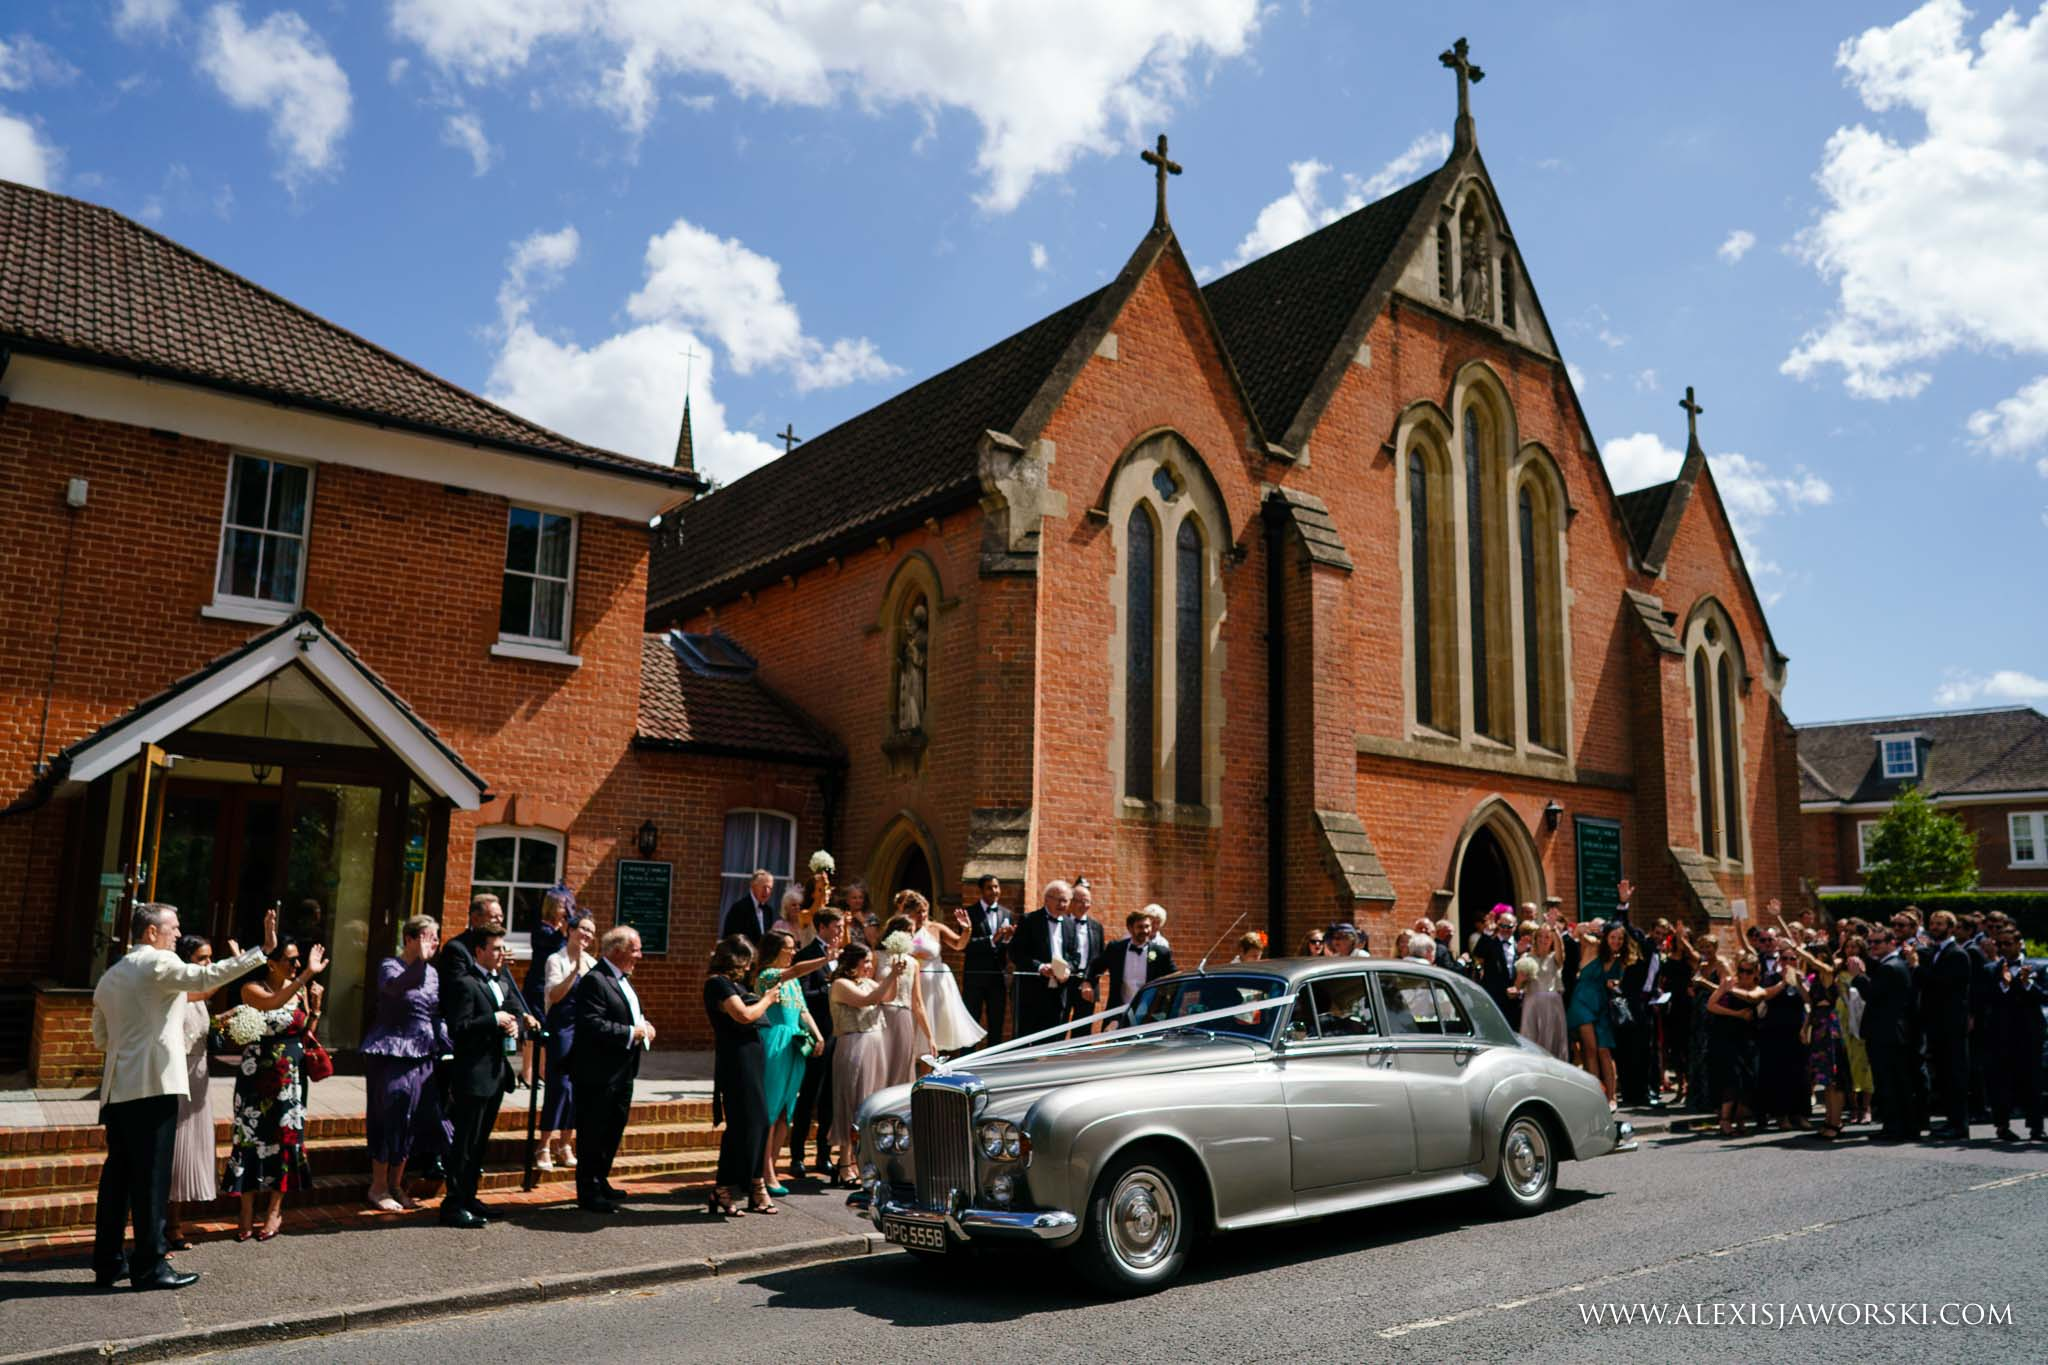 leaving the church by car